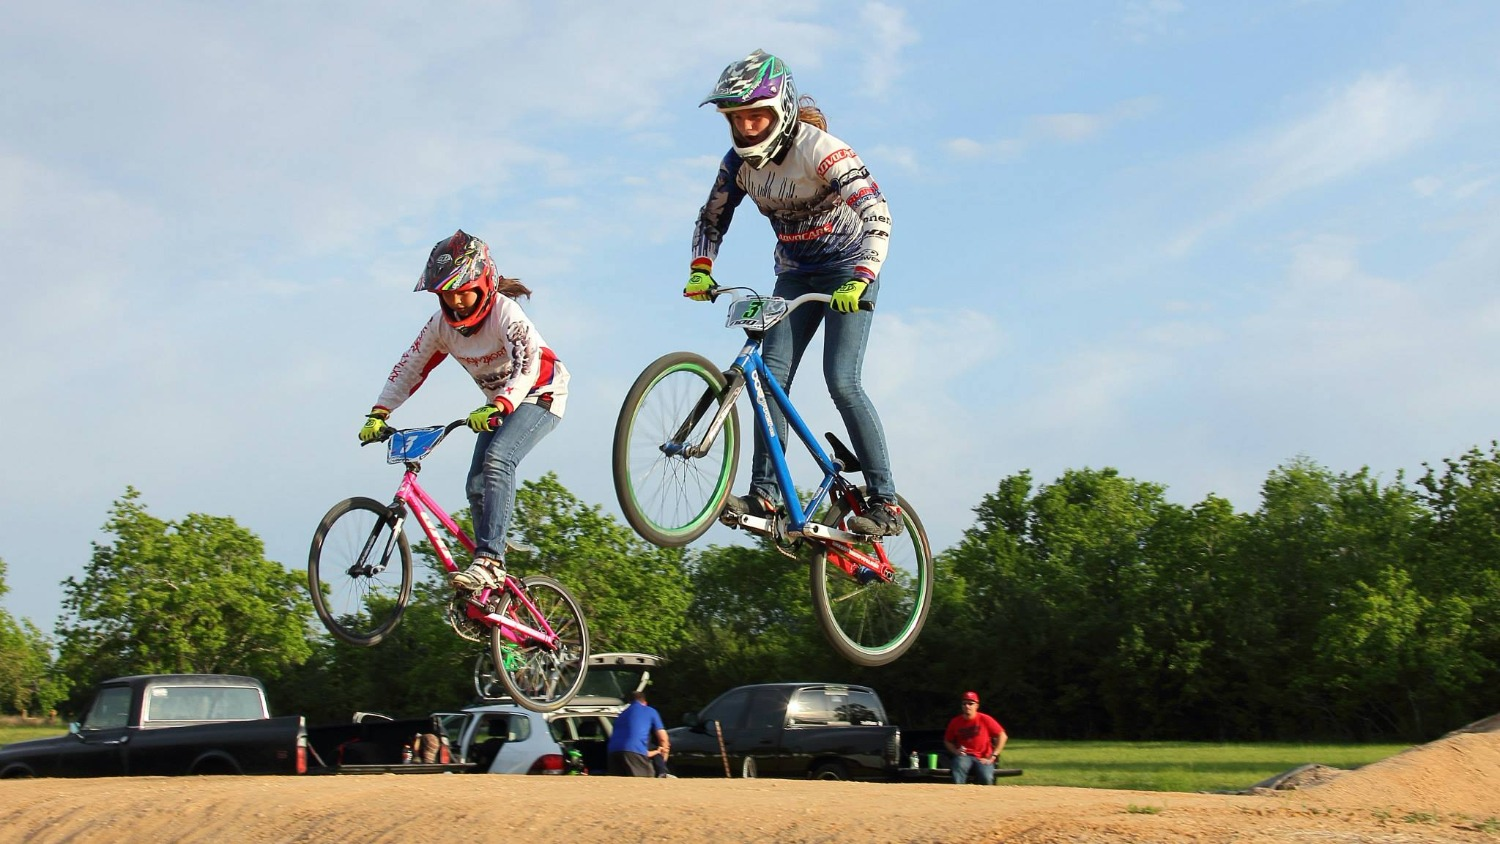 Girls fly high at Pearland BMX